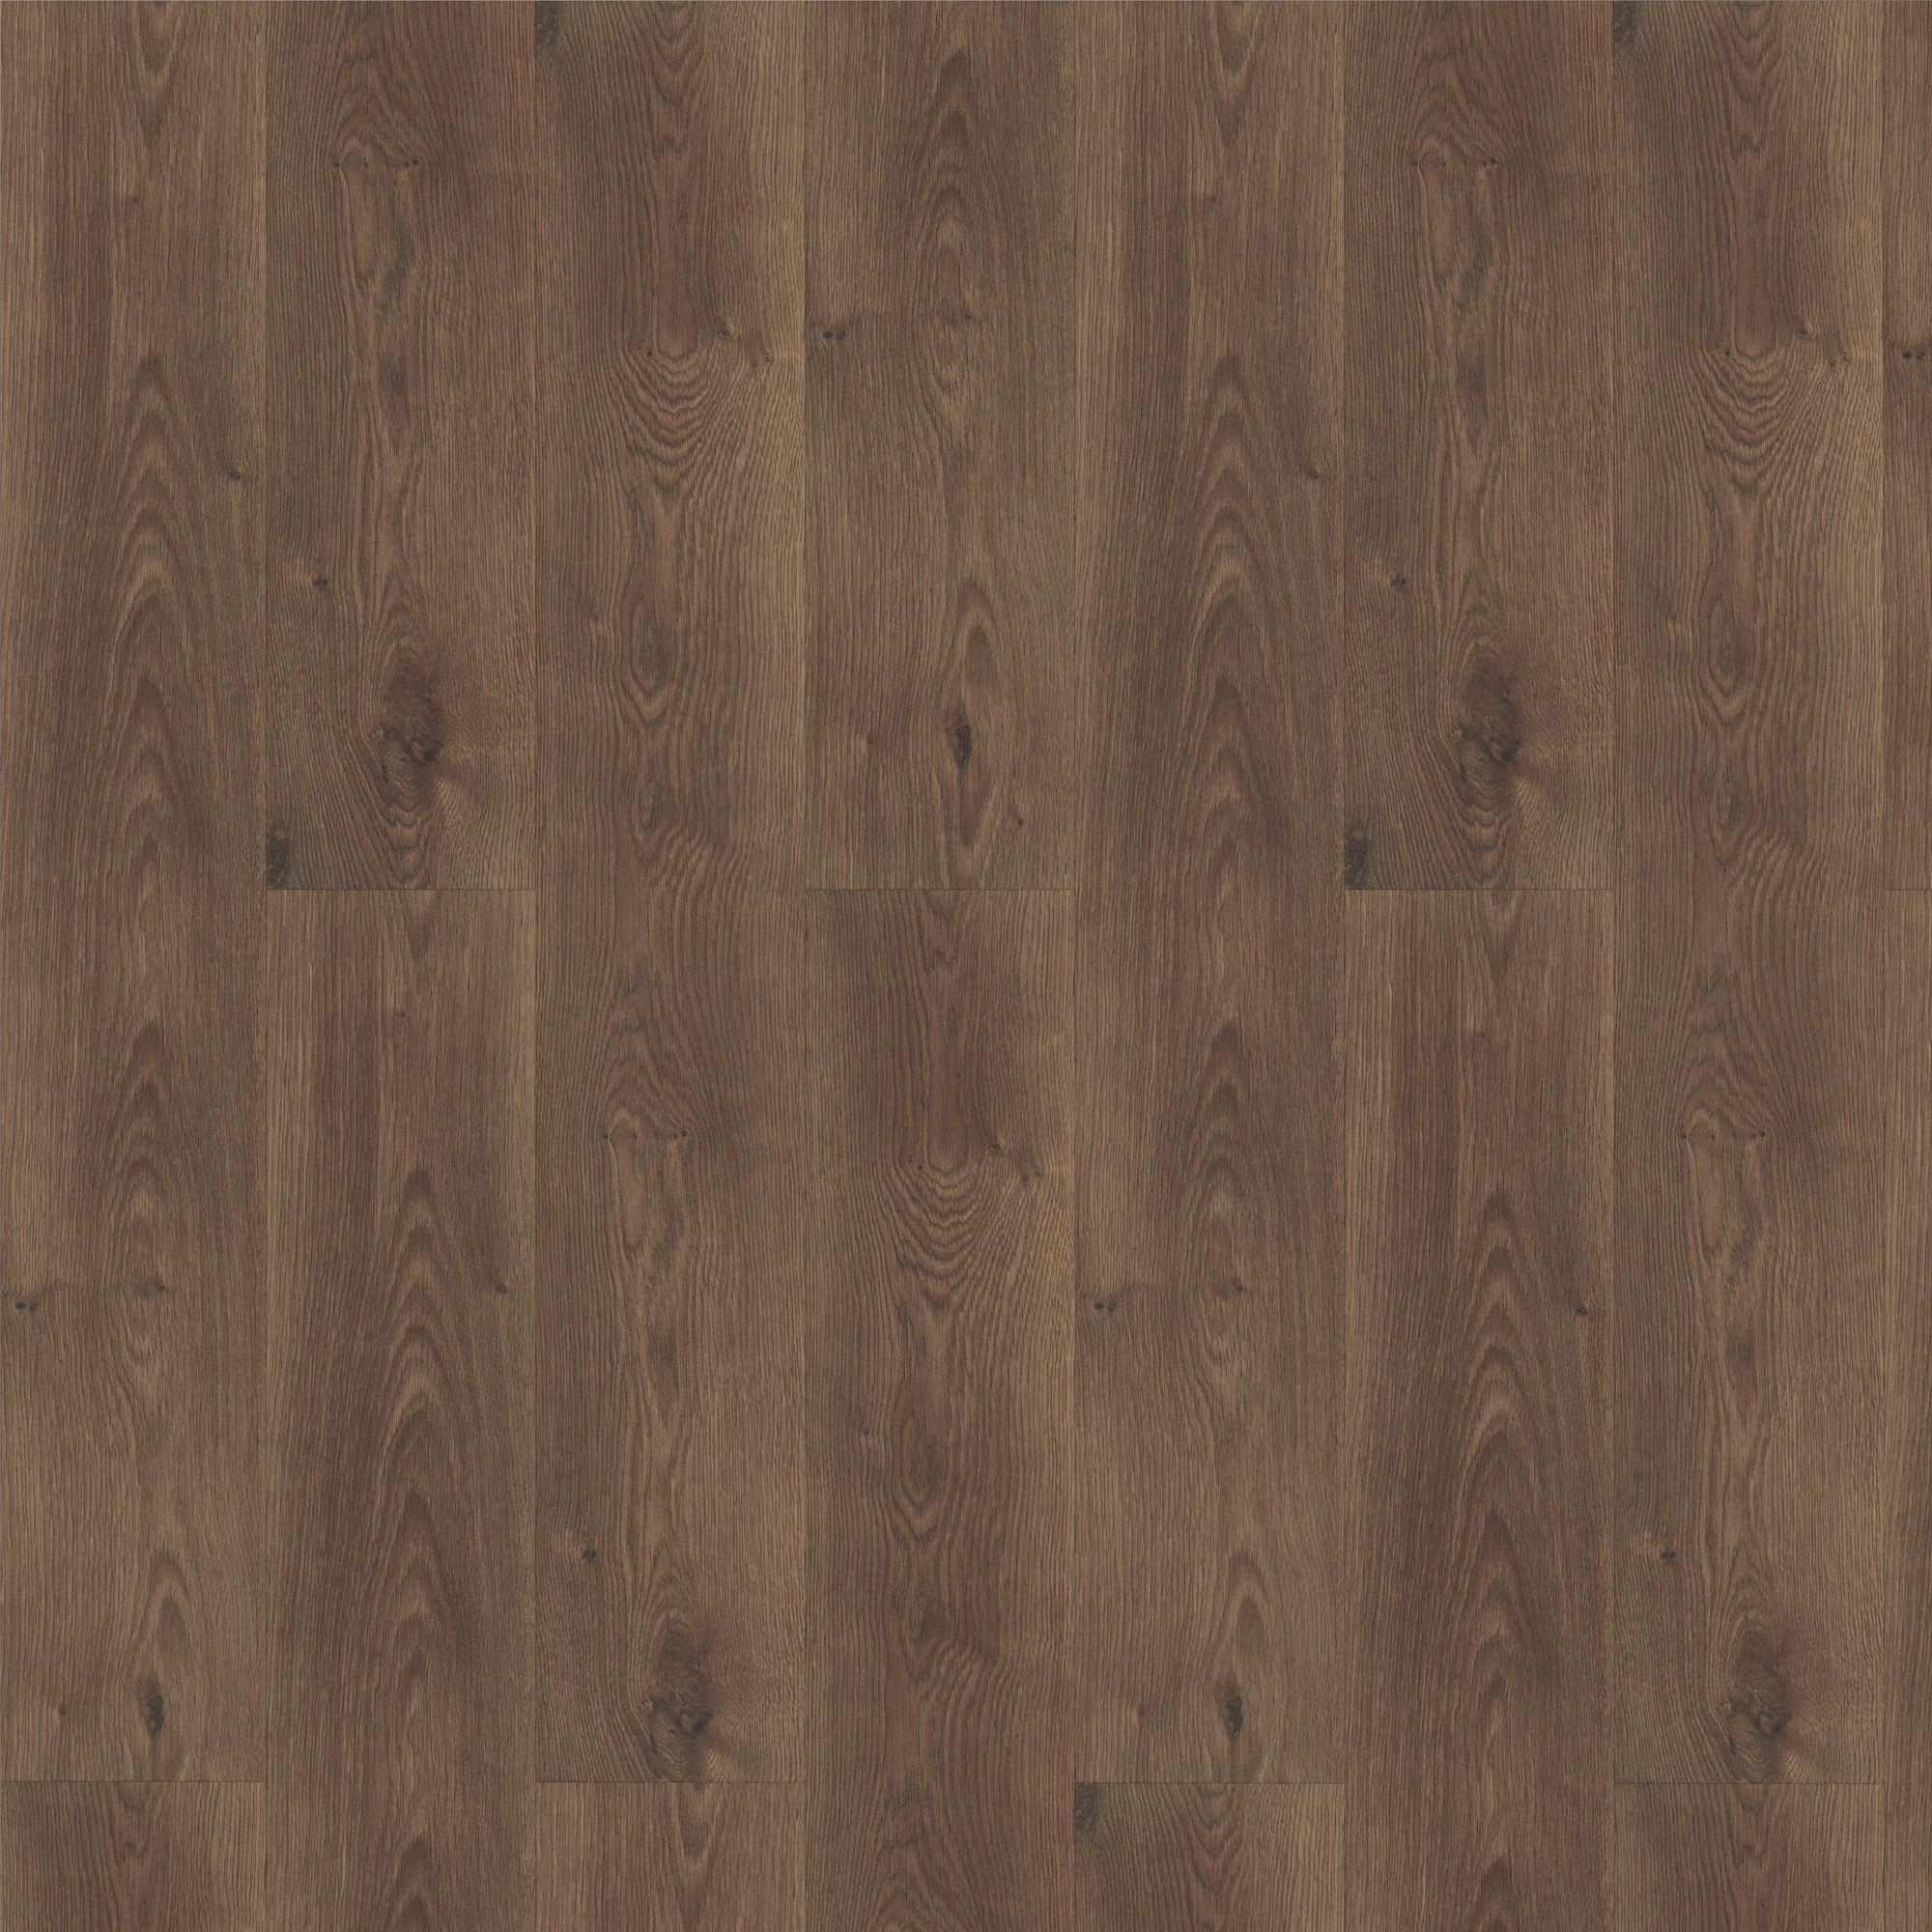 Overture Natural Virginia Oak Effect Laminate Flooring 1 25 M² Sample